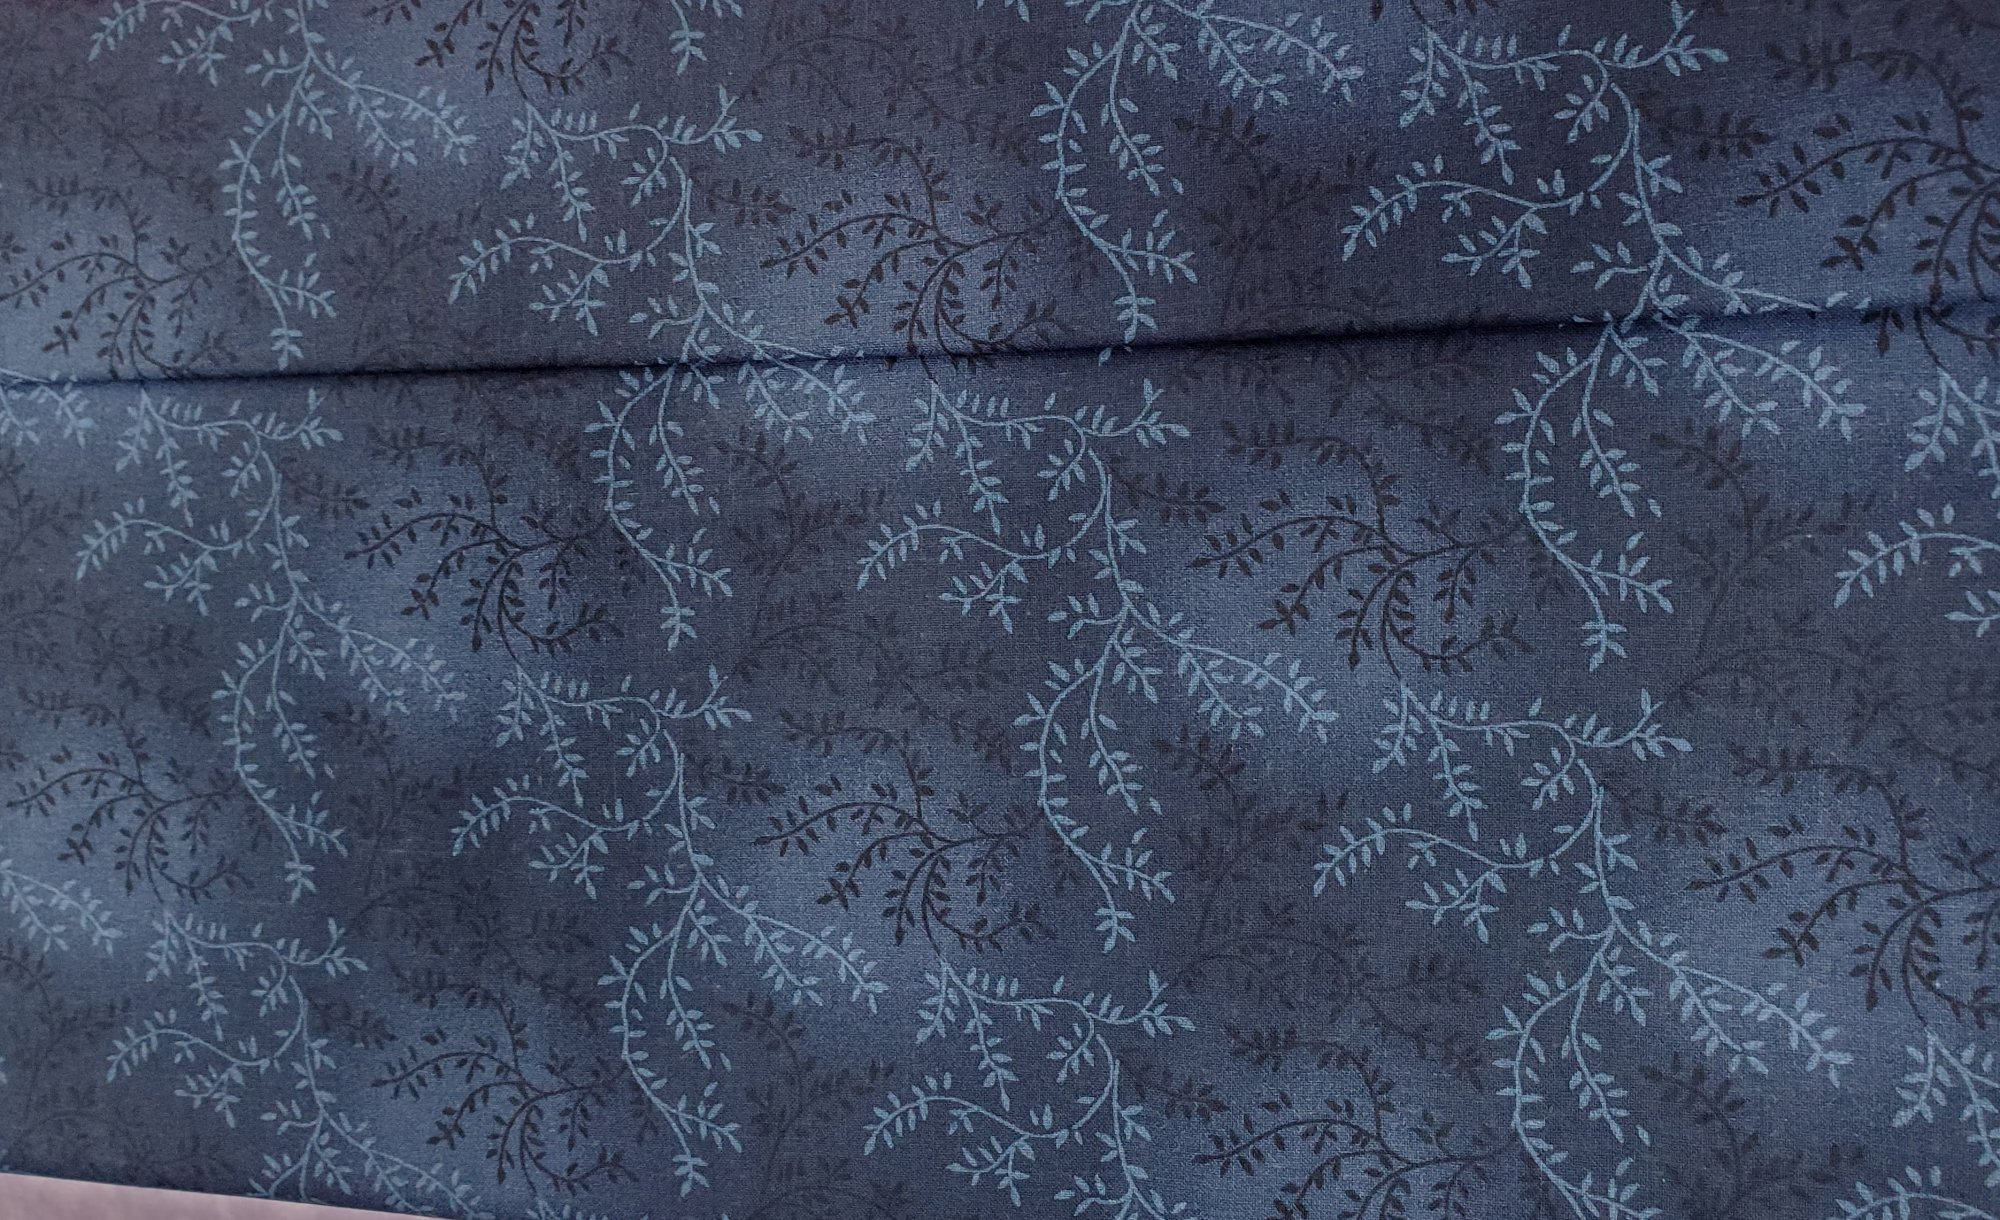 3 Yard Backing Piece: 108 Wide Navy Blue Variegated Branches in a single 3 yard piece